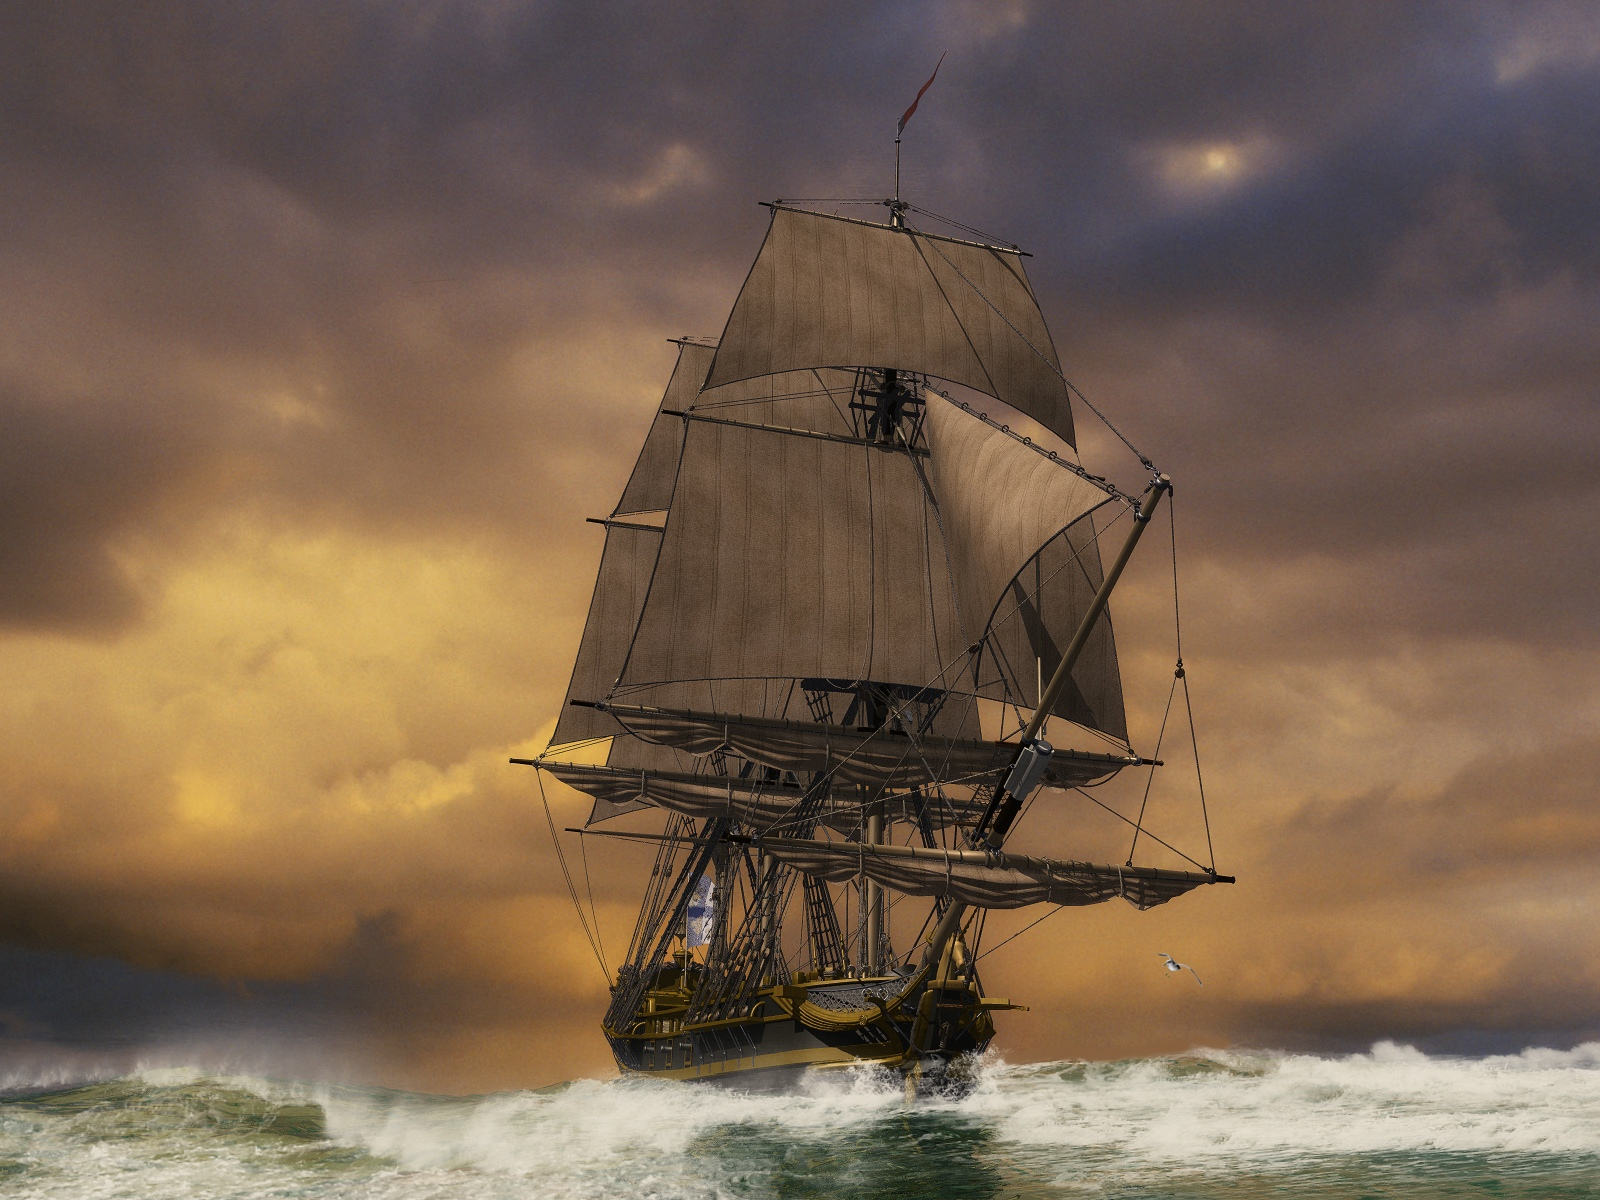 Great Sailing Ships 3D   Photo 11 of 36 phombocom 1600x1200